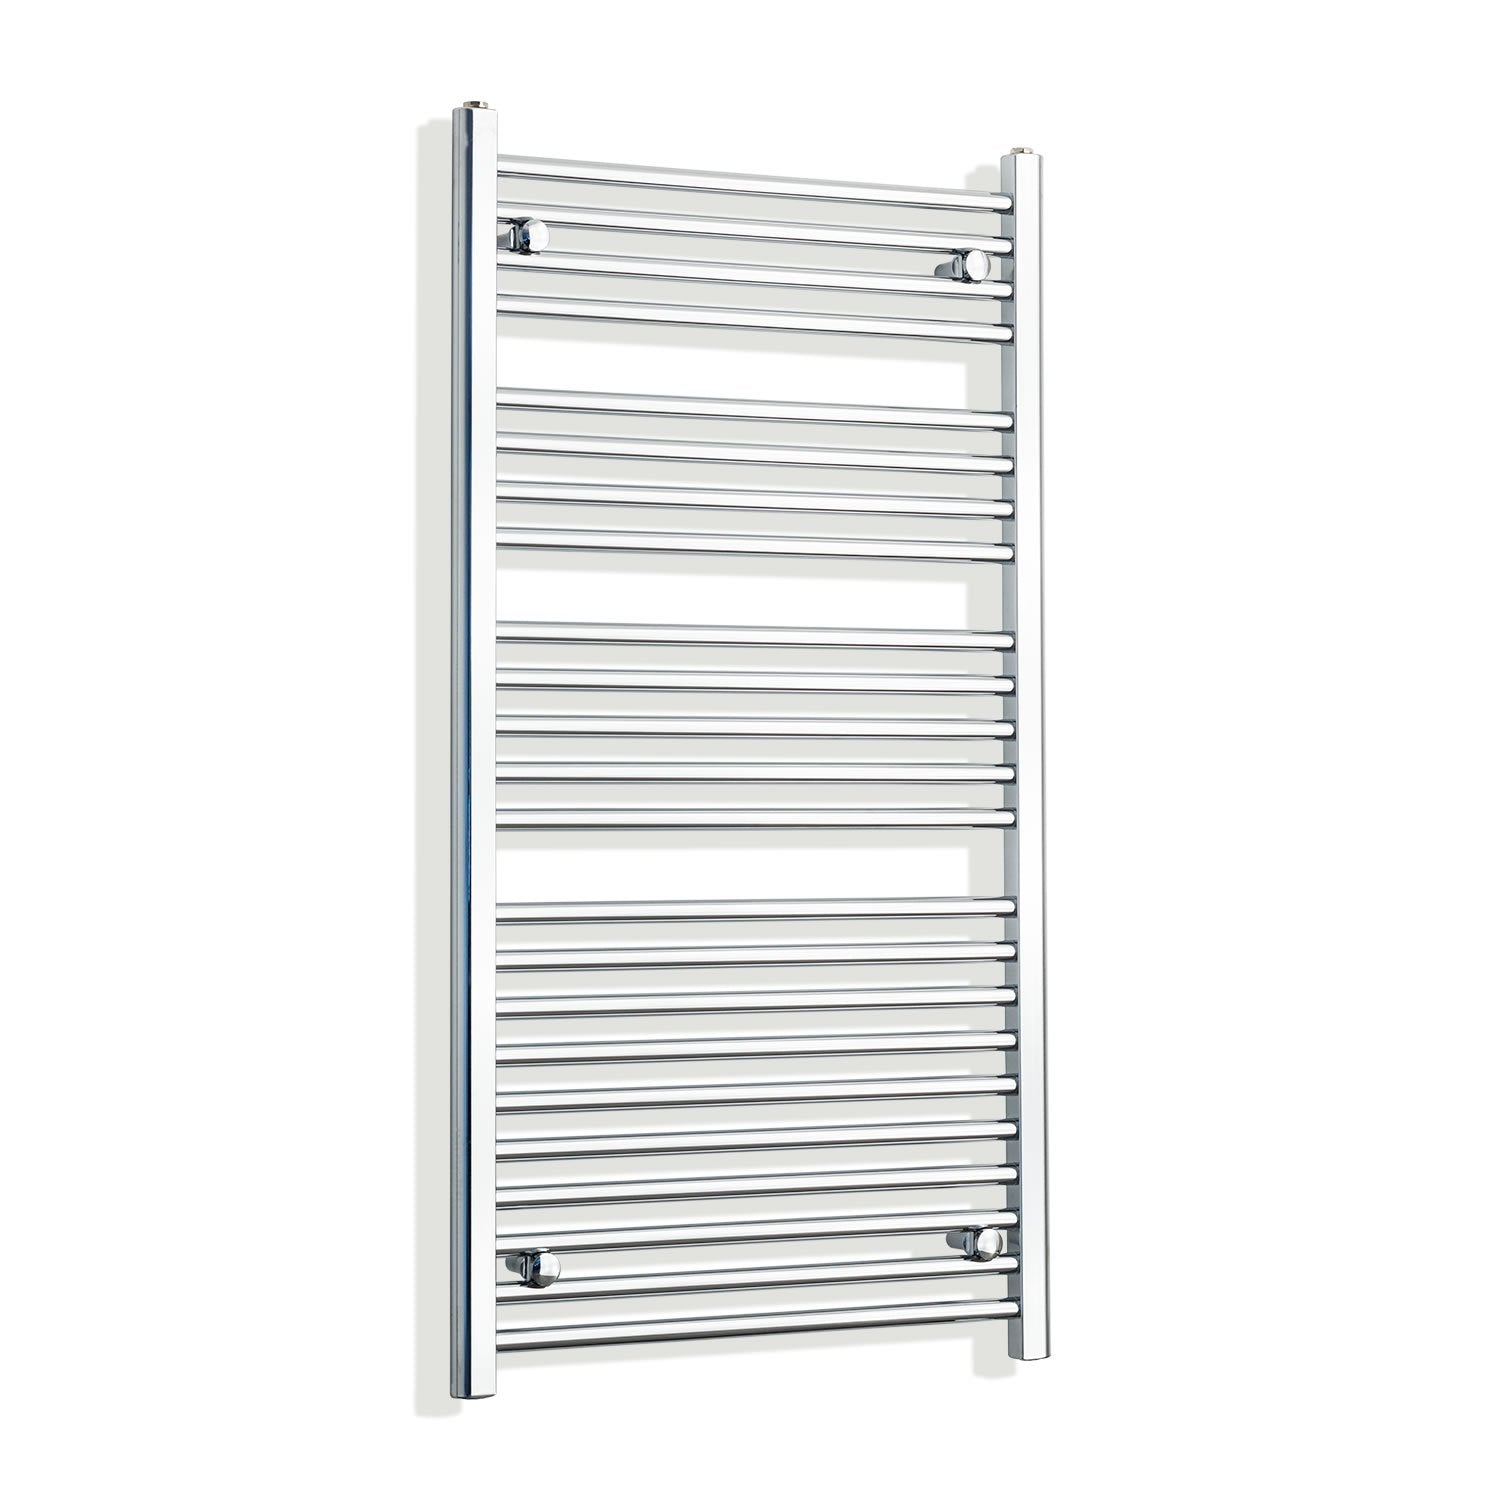 700mm Wide 1200mm High Curved Chrome Heated Towel Rail Radiator HTR,Towel Rail Only